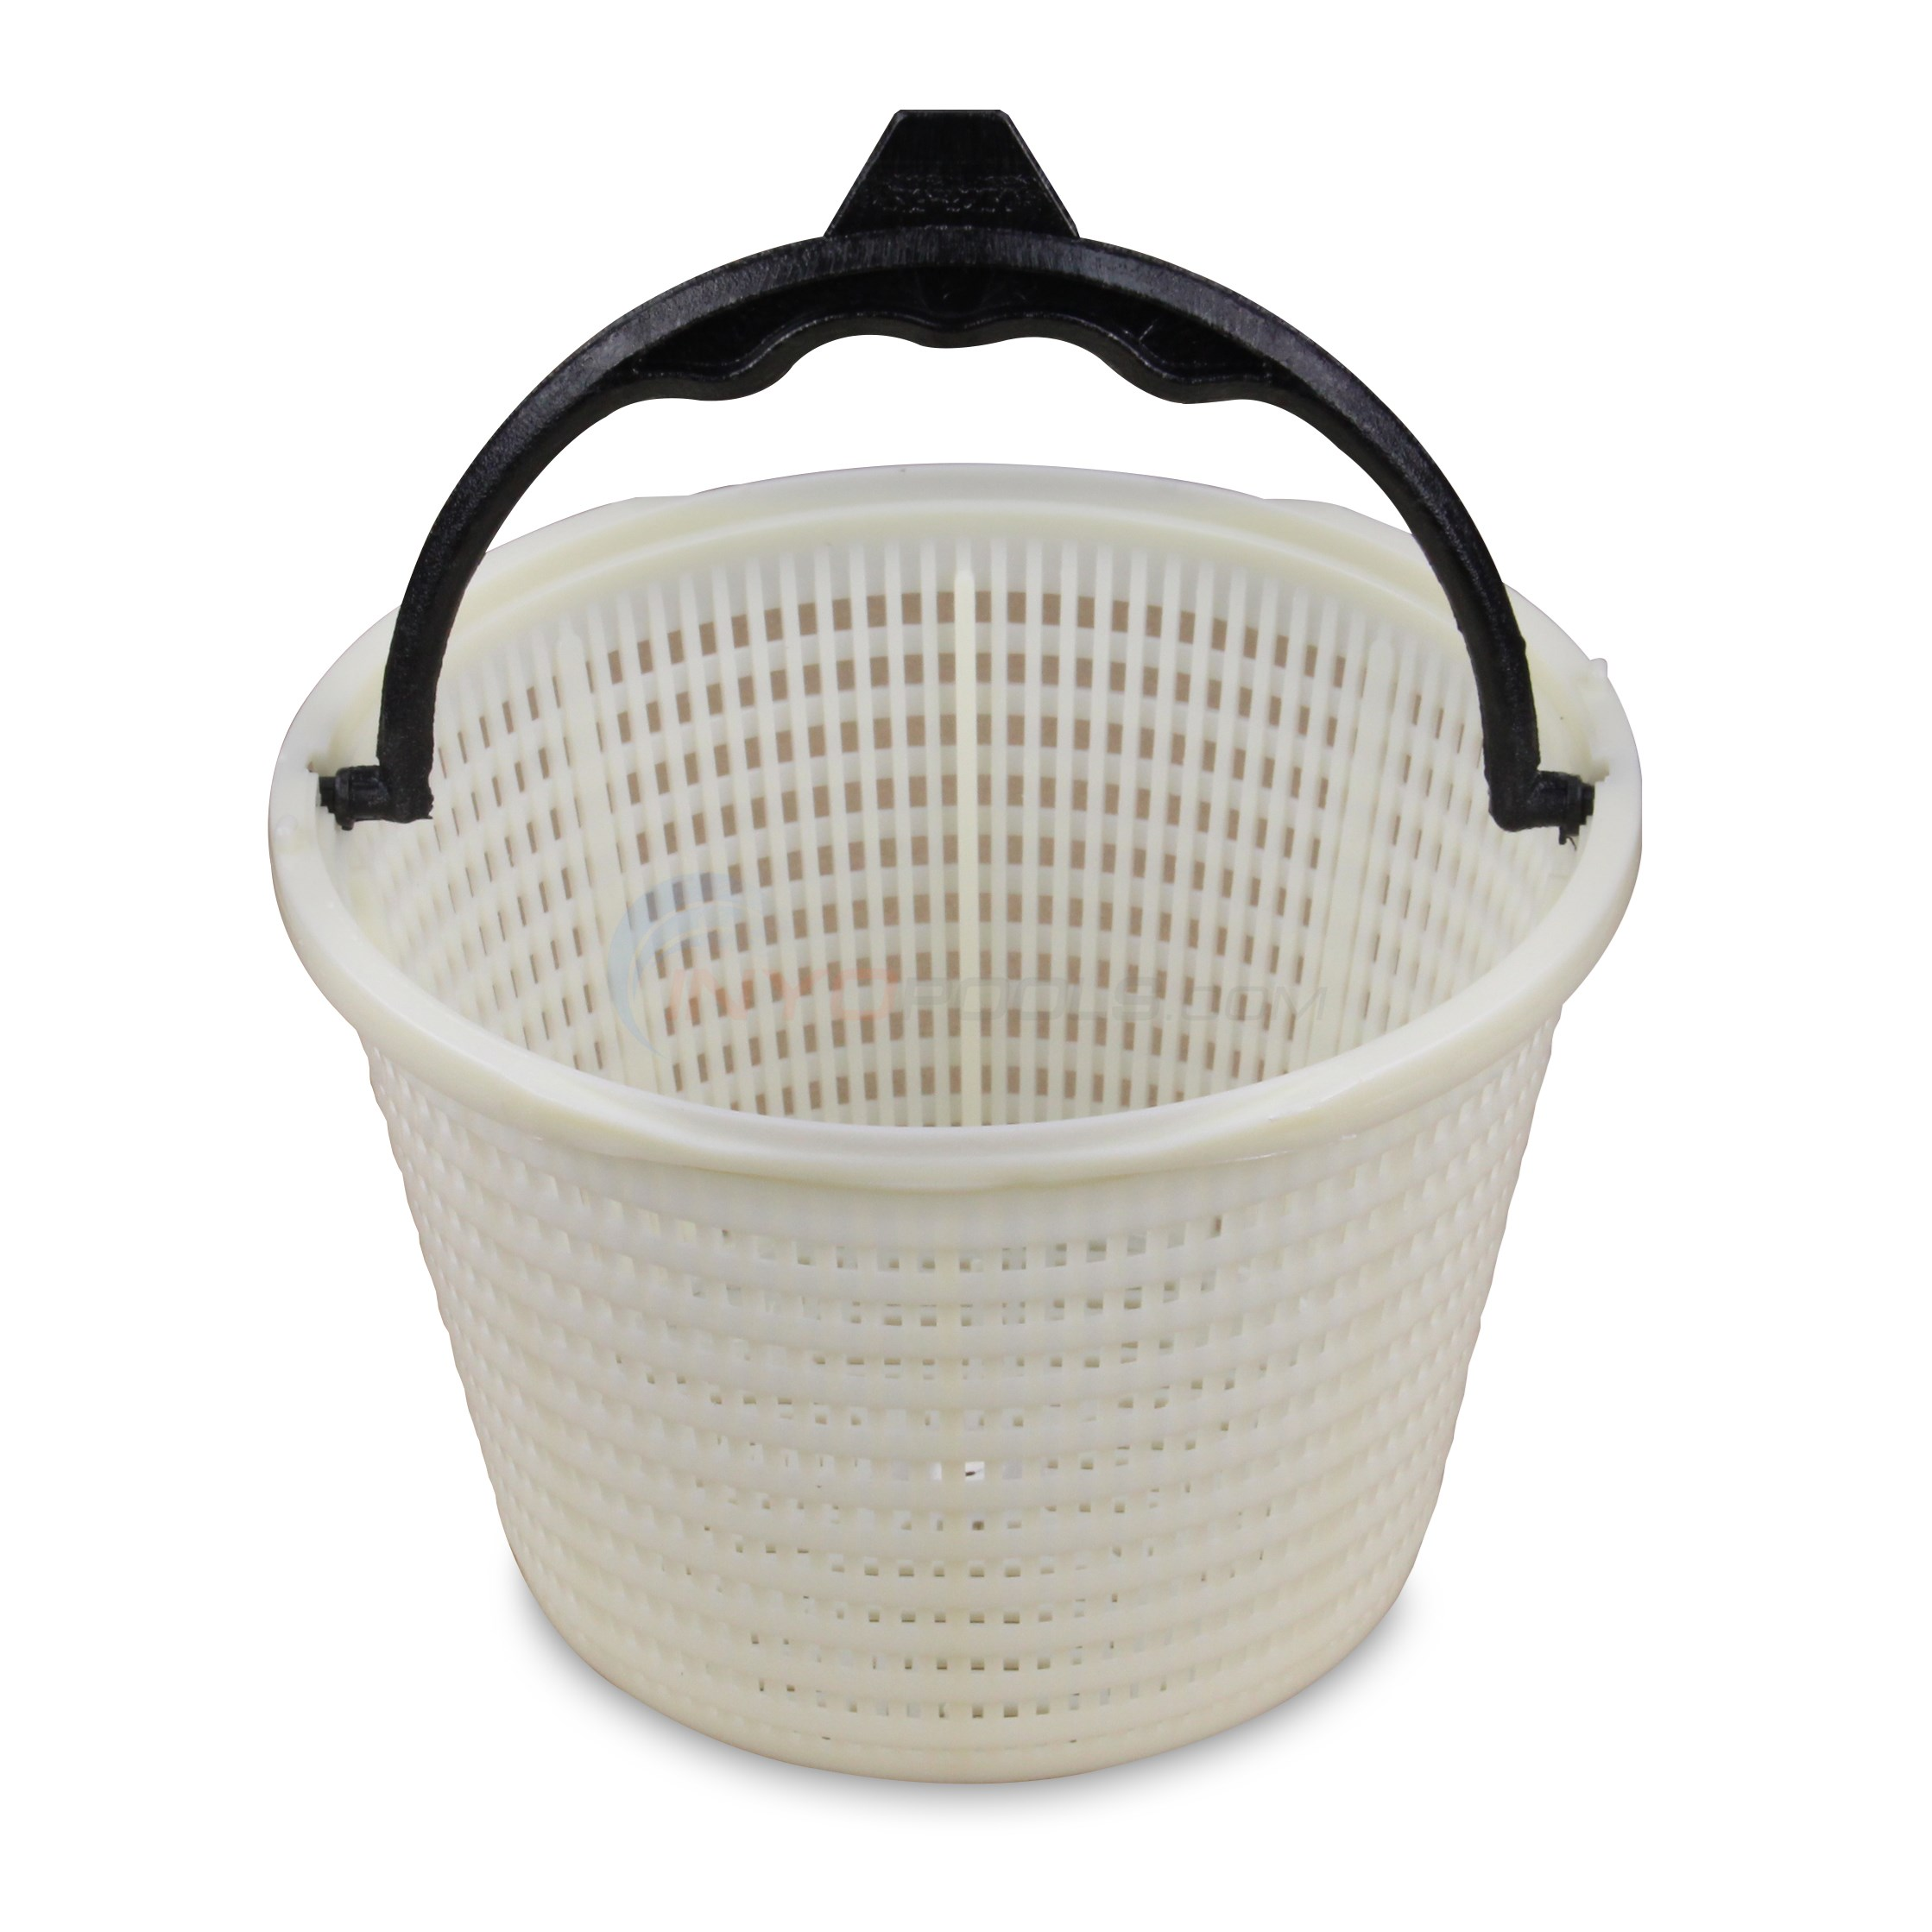 WATERWAY SKIMMER BASKET With HANDLE